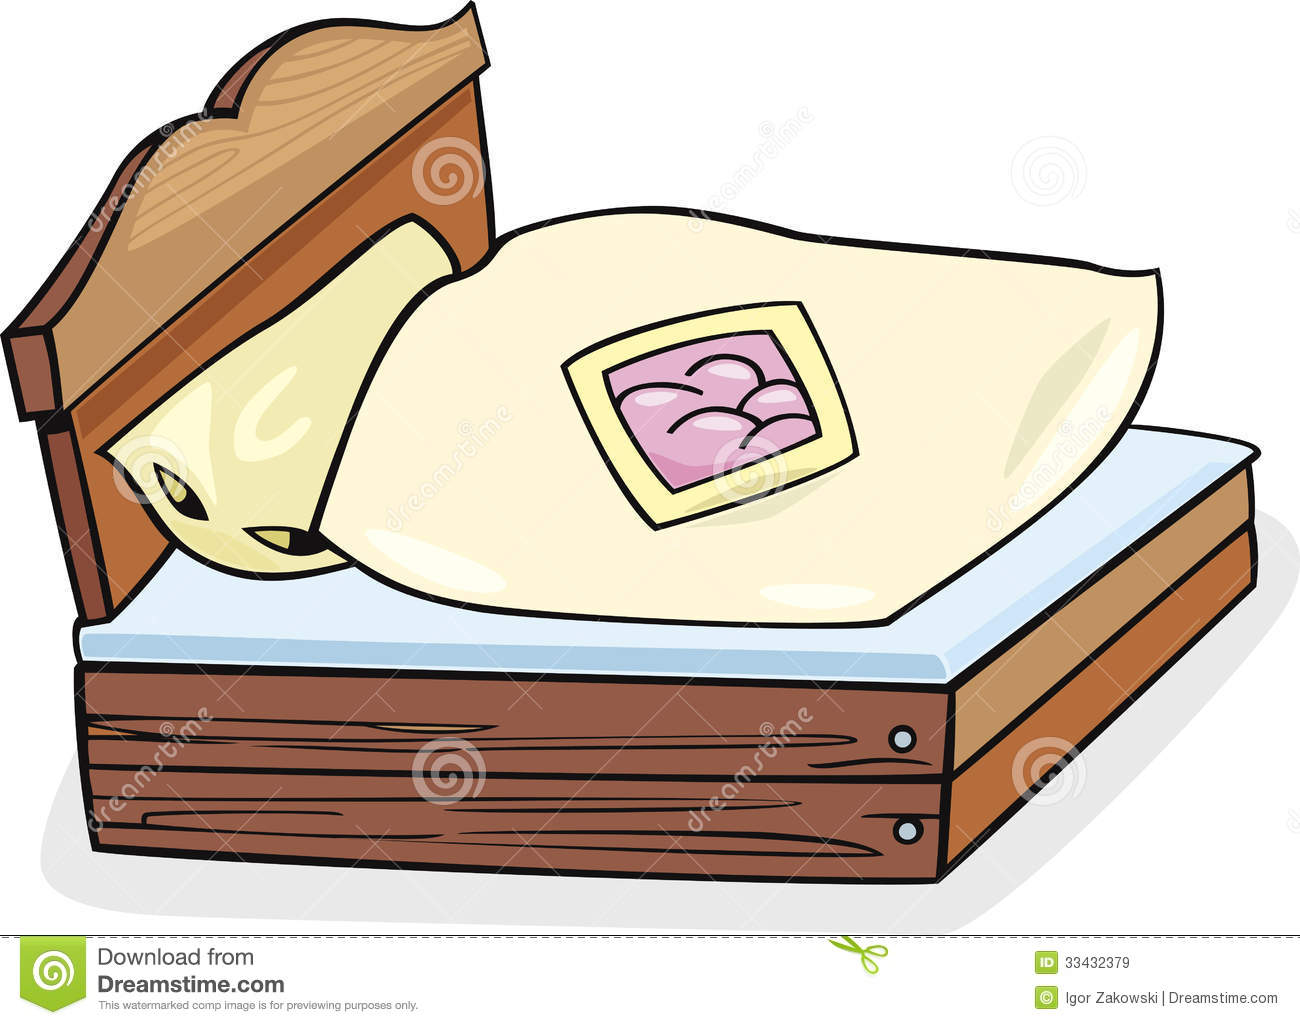 Bed Furniture Cartoon Illustration Royalty Free Stock Images.